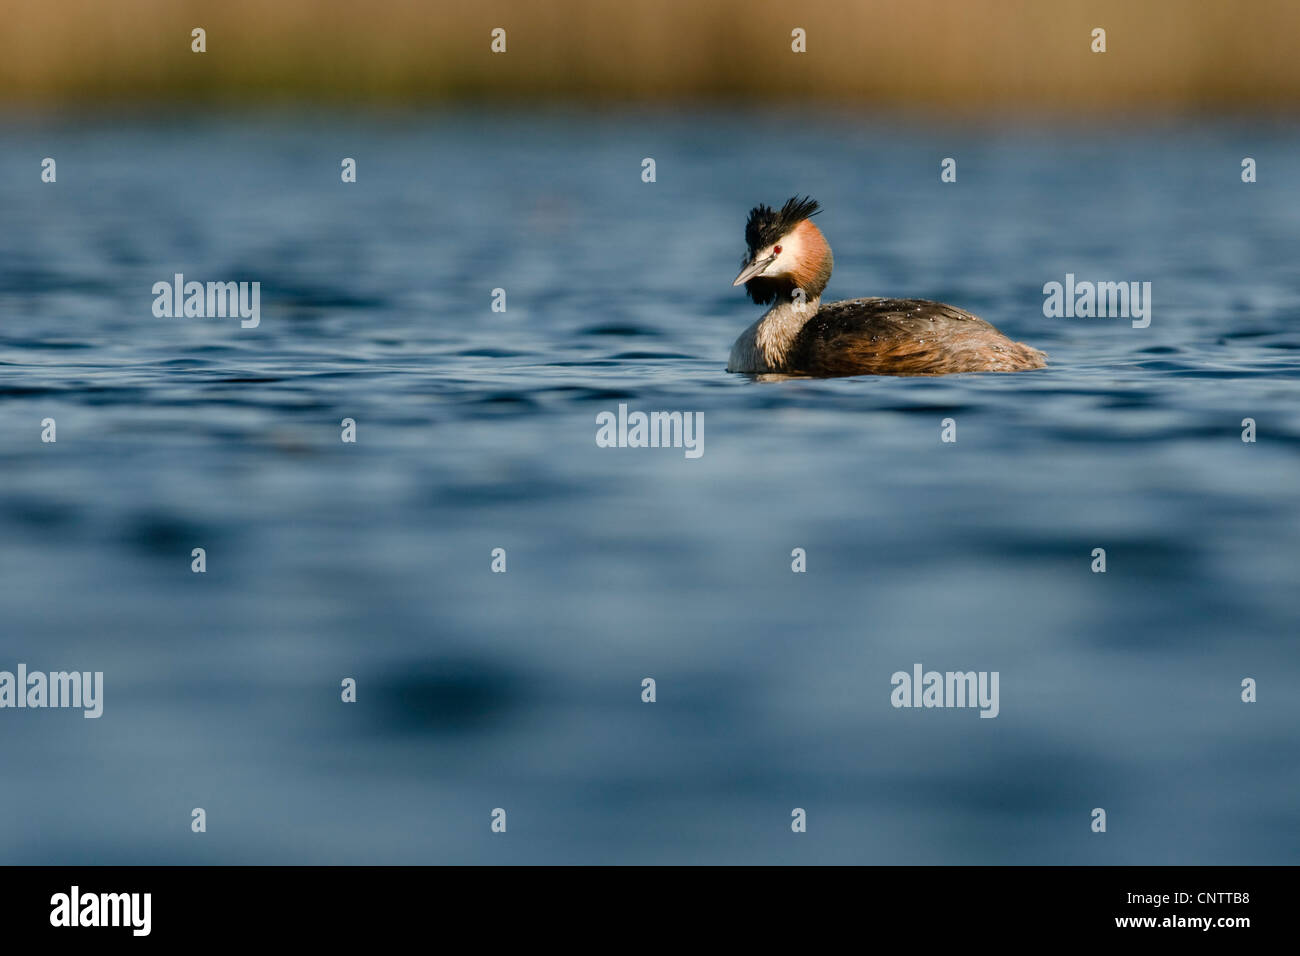 Great Crested Grebe swimming on open water - Stock Image